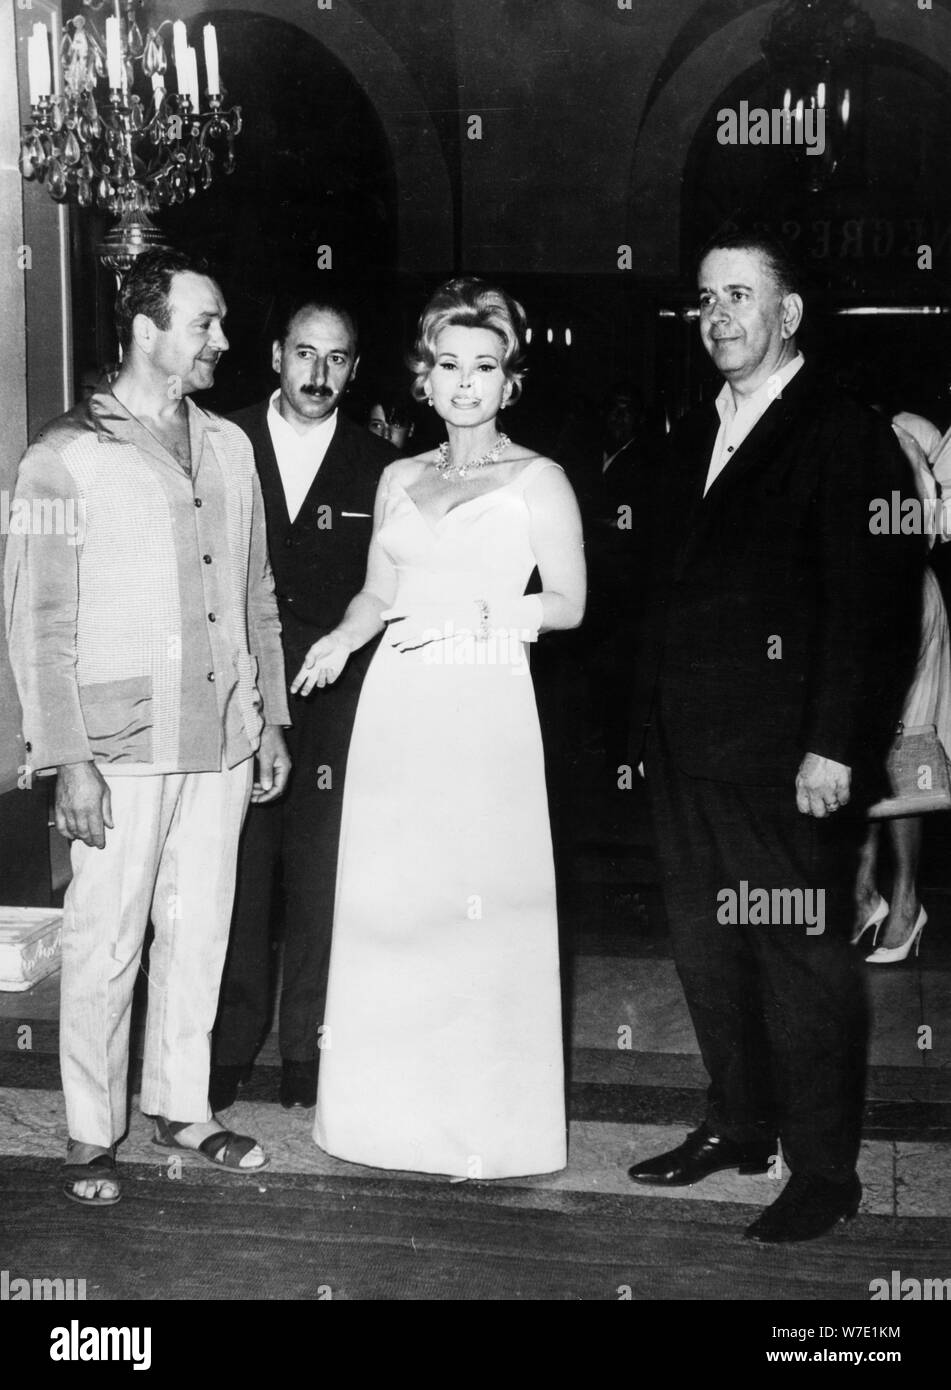 Hungarian-born American Actress Zsa Zsa Gabor and her bodyguards, Nice, France, 1966. Artist: Unknown Stock Photo